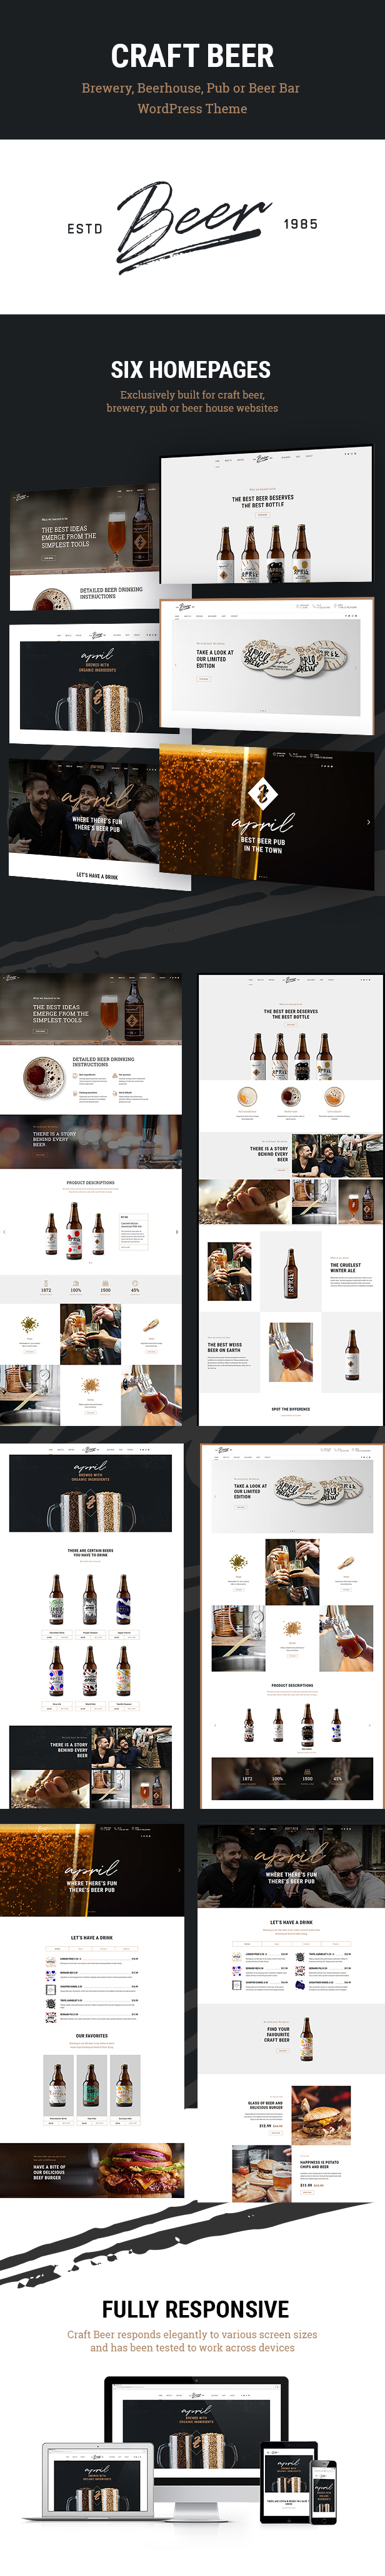 Craft Beer - Brewery & Pub WordPress Theme - 1